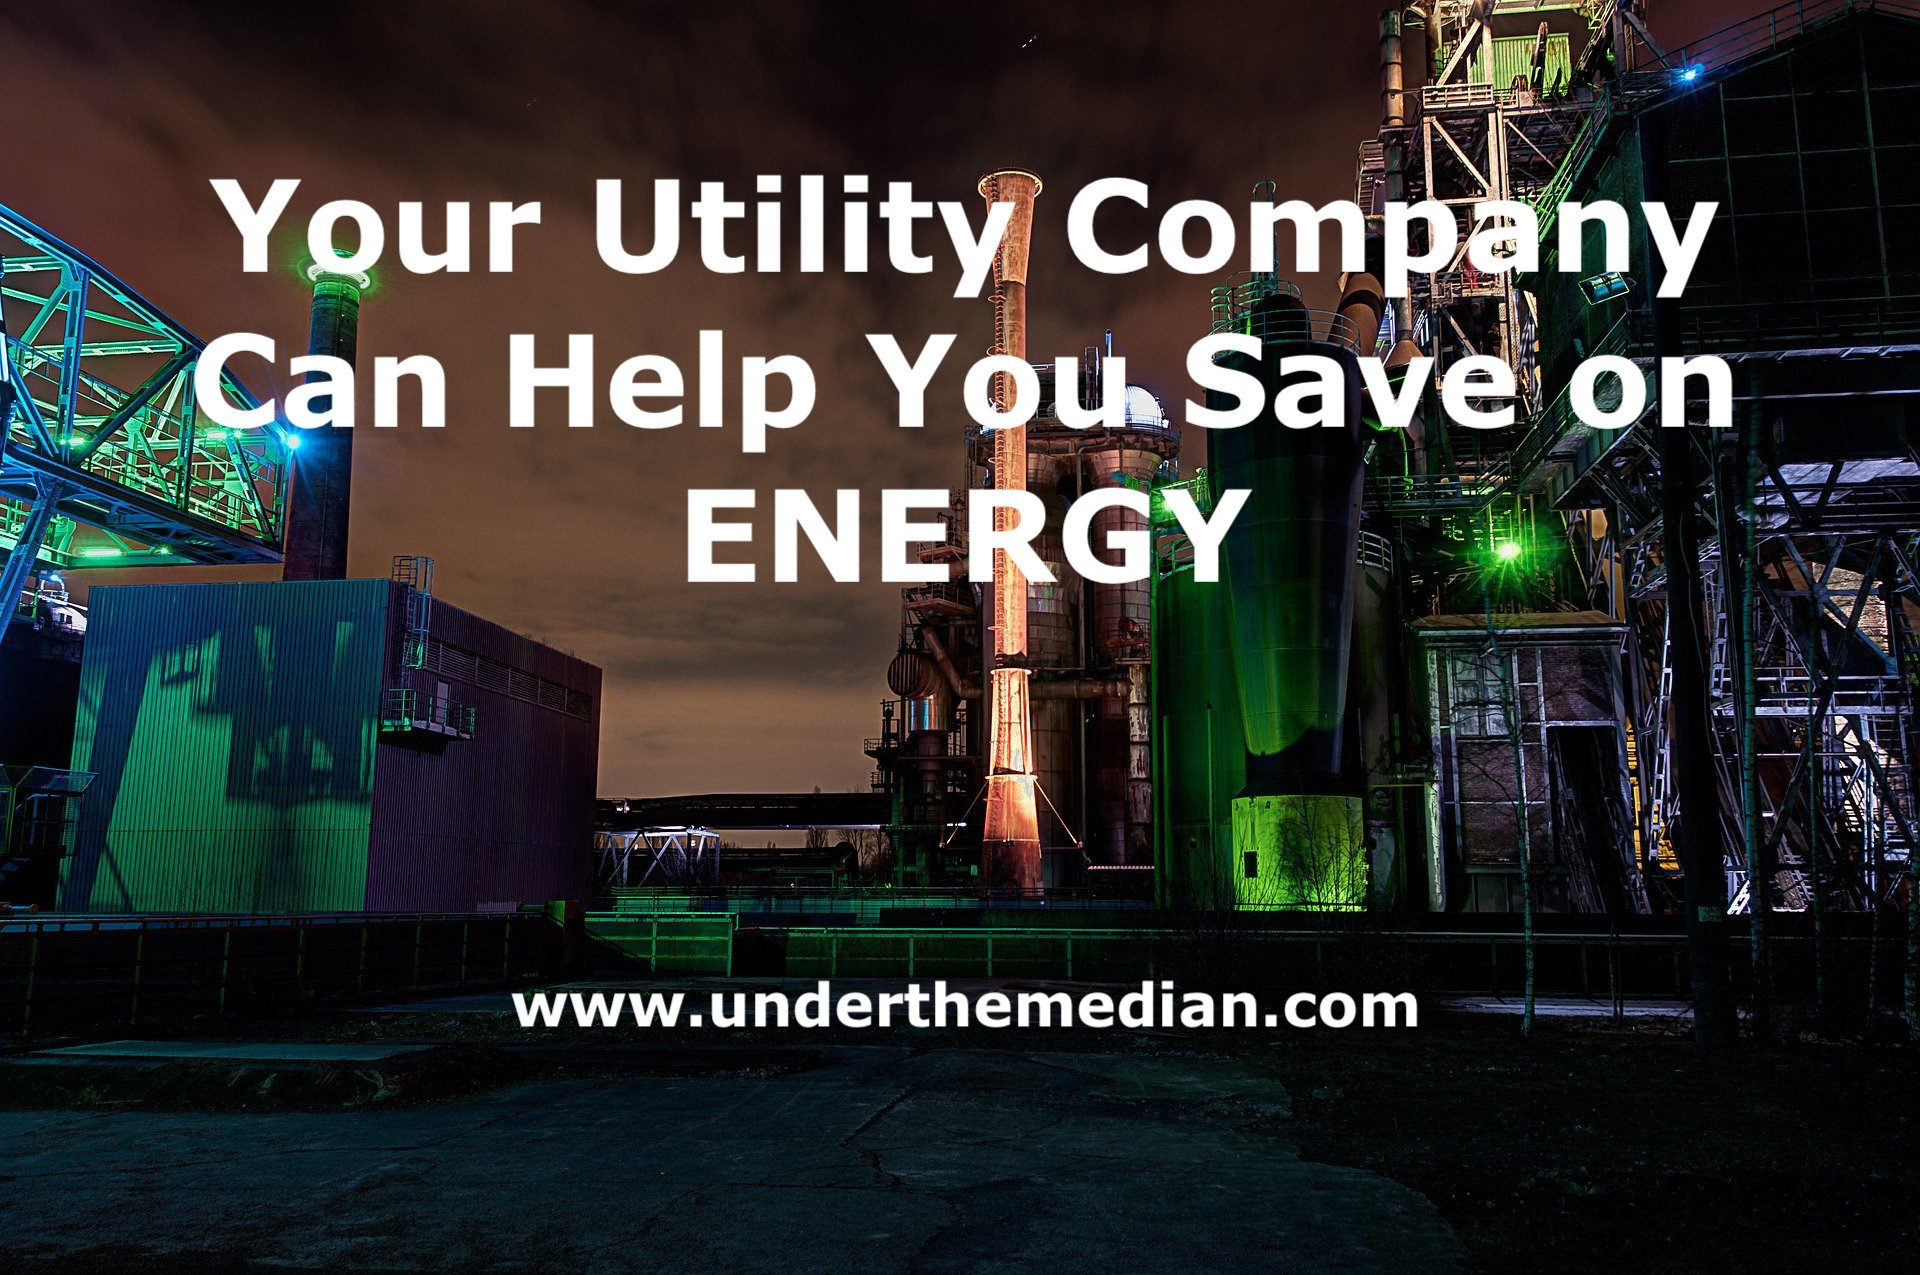 Your Utility Company Can Help You Save on Energy